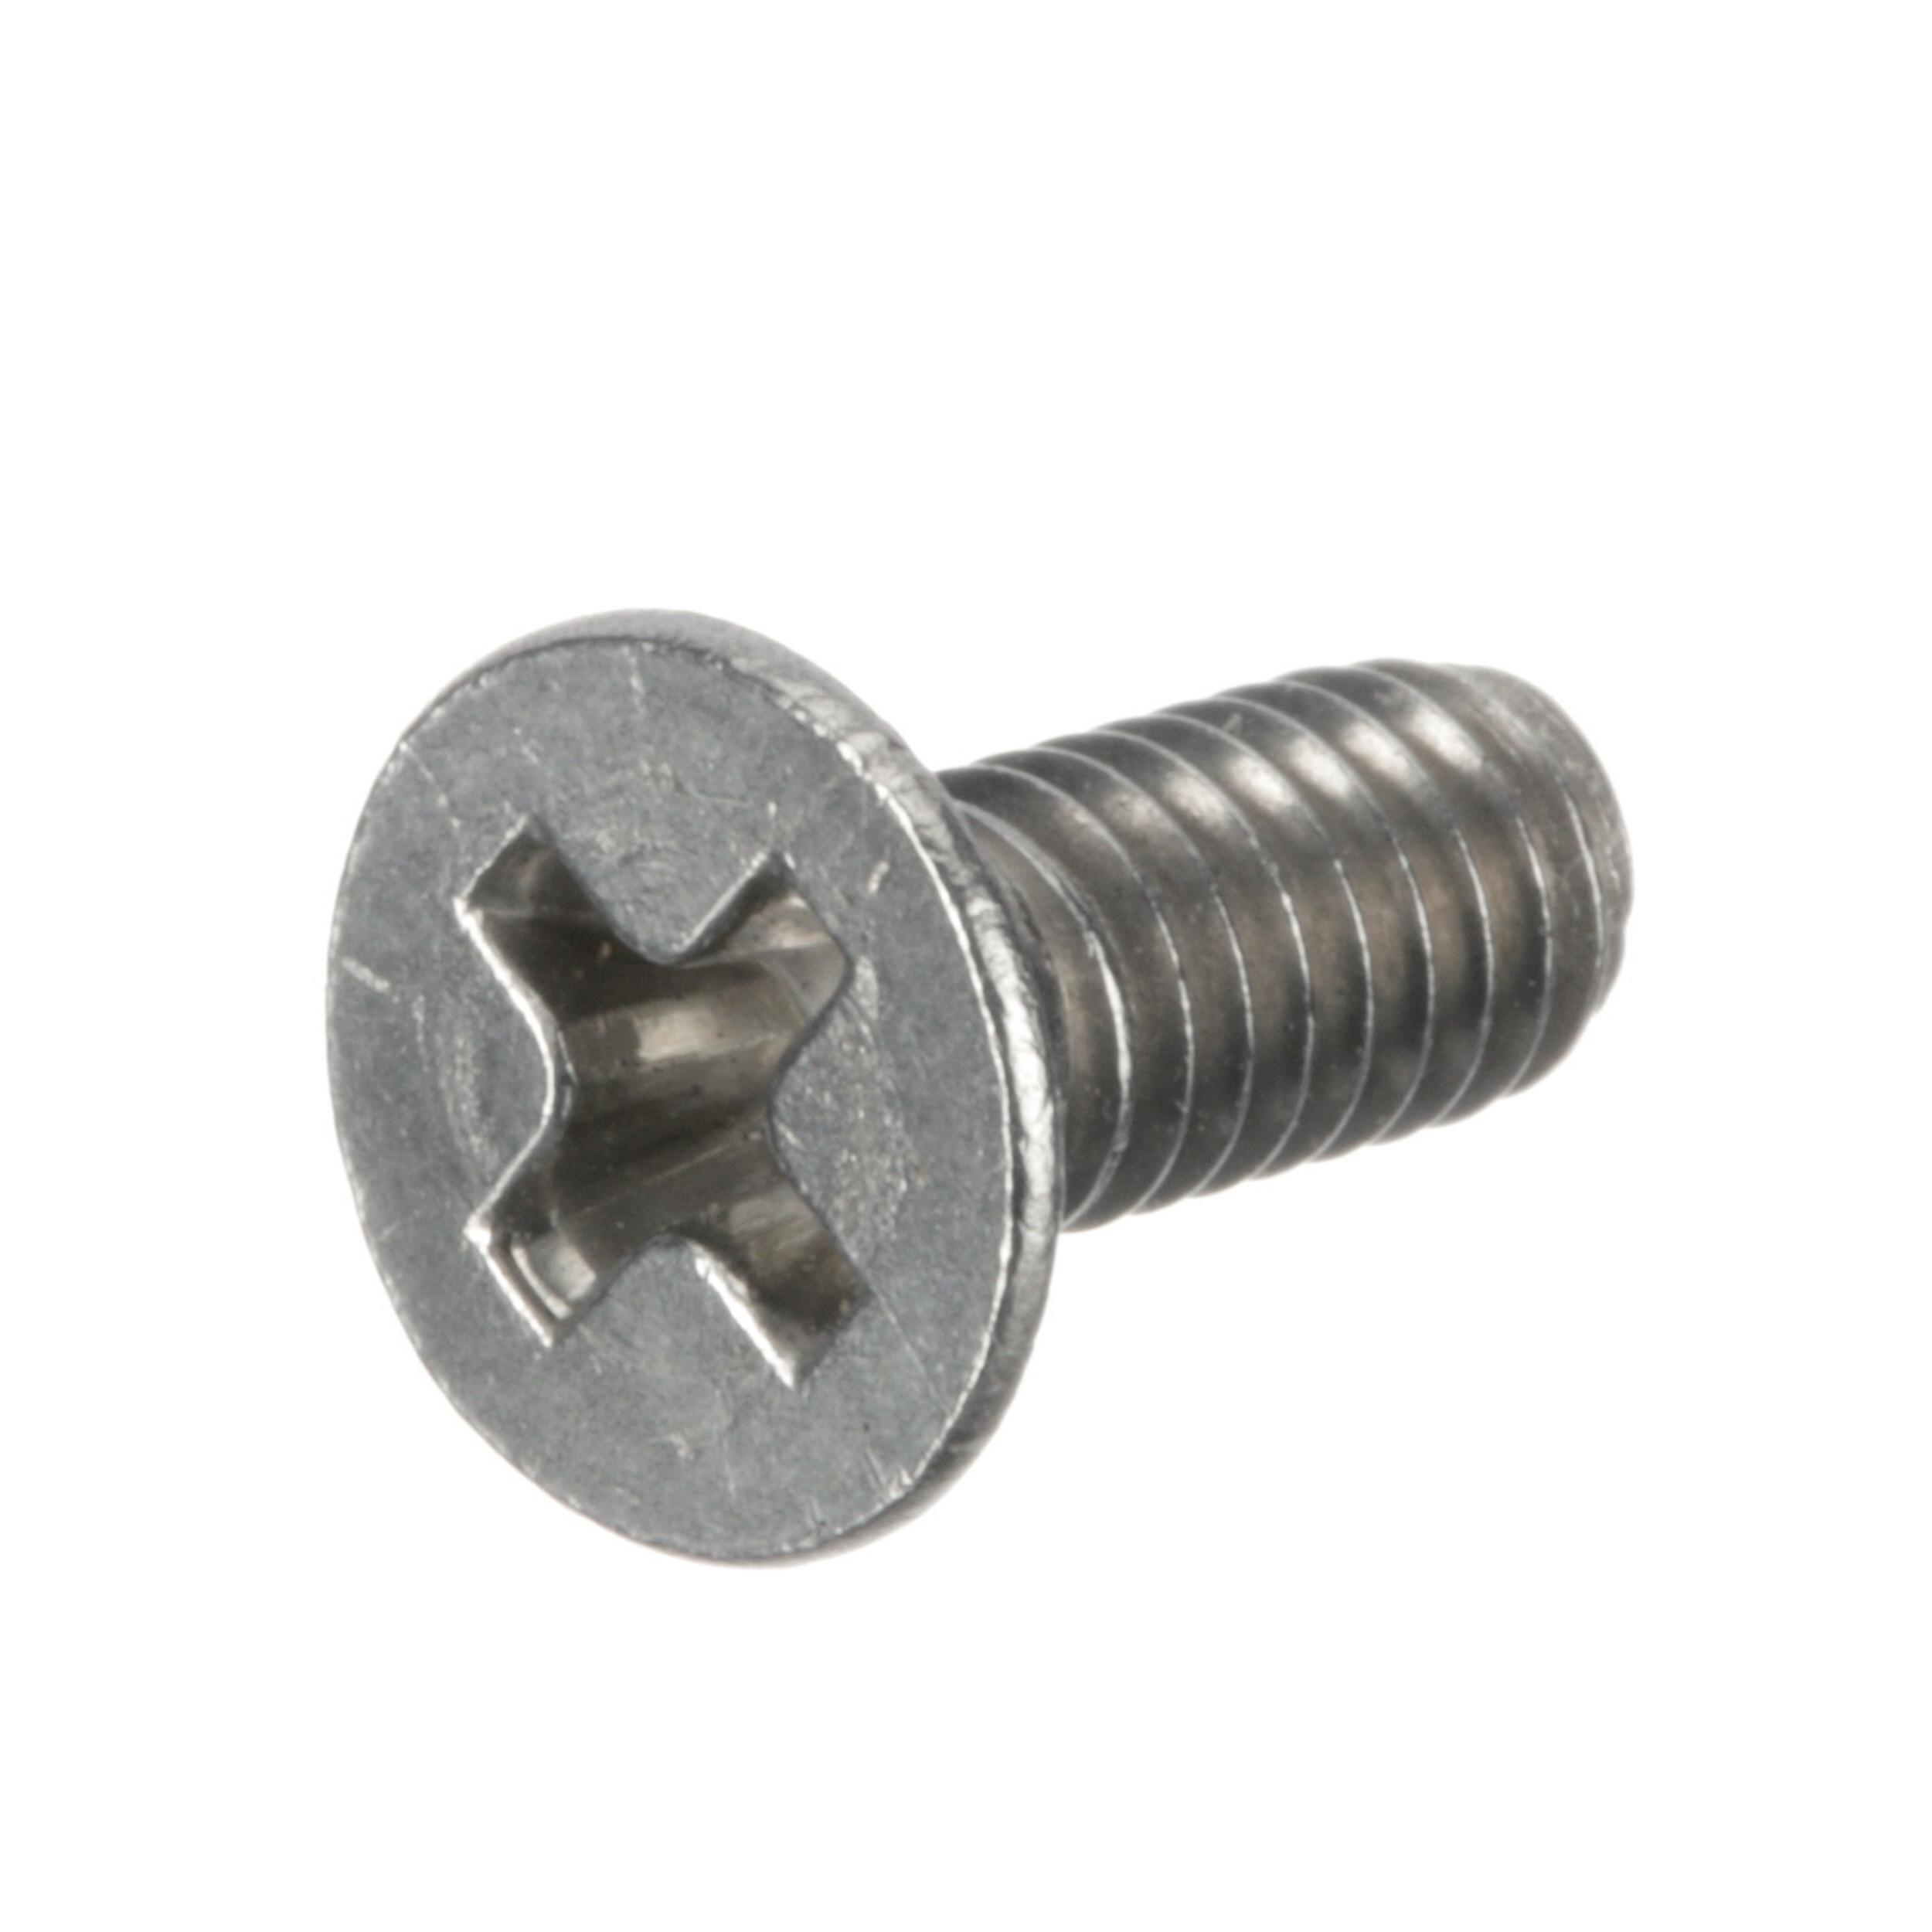 GLOBE LOCK SCREW